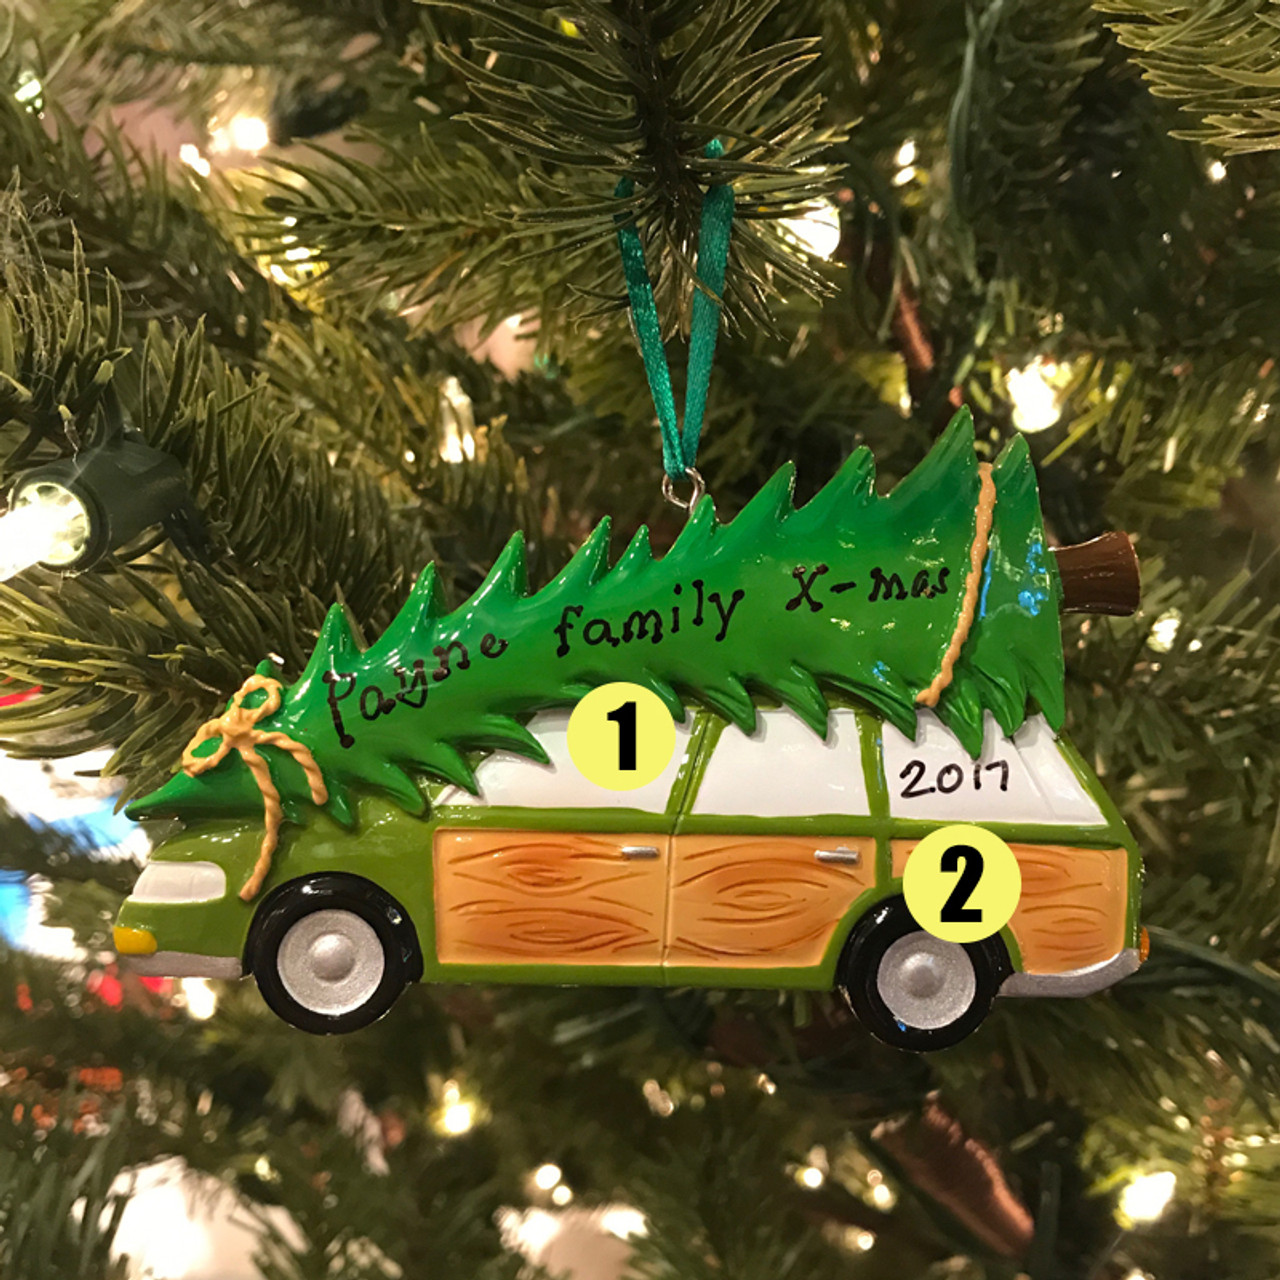 Christmas Ornaments Personalized.Family Station Wagon With Tree Personalized Christmas Ornament Or1565